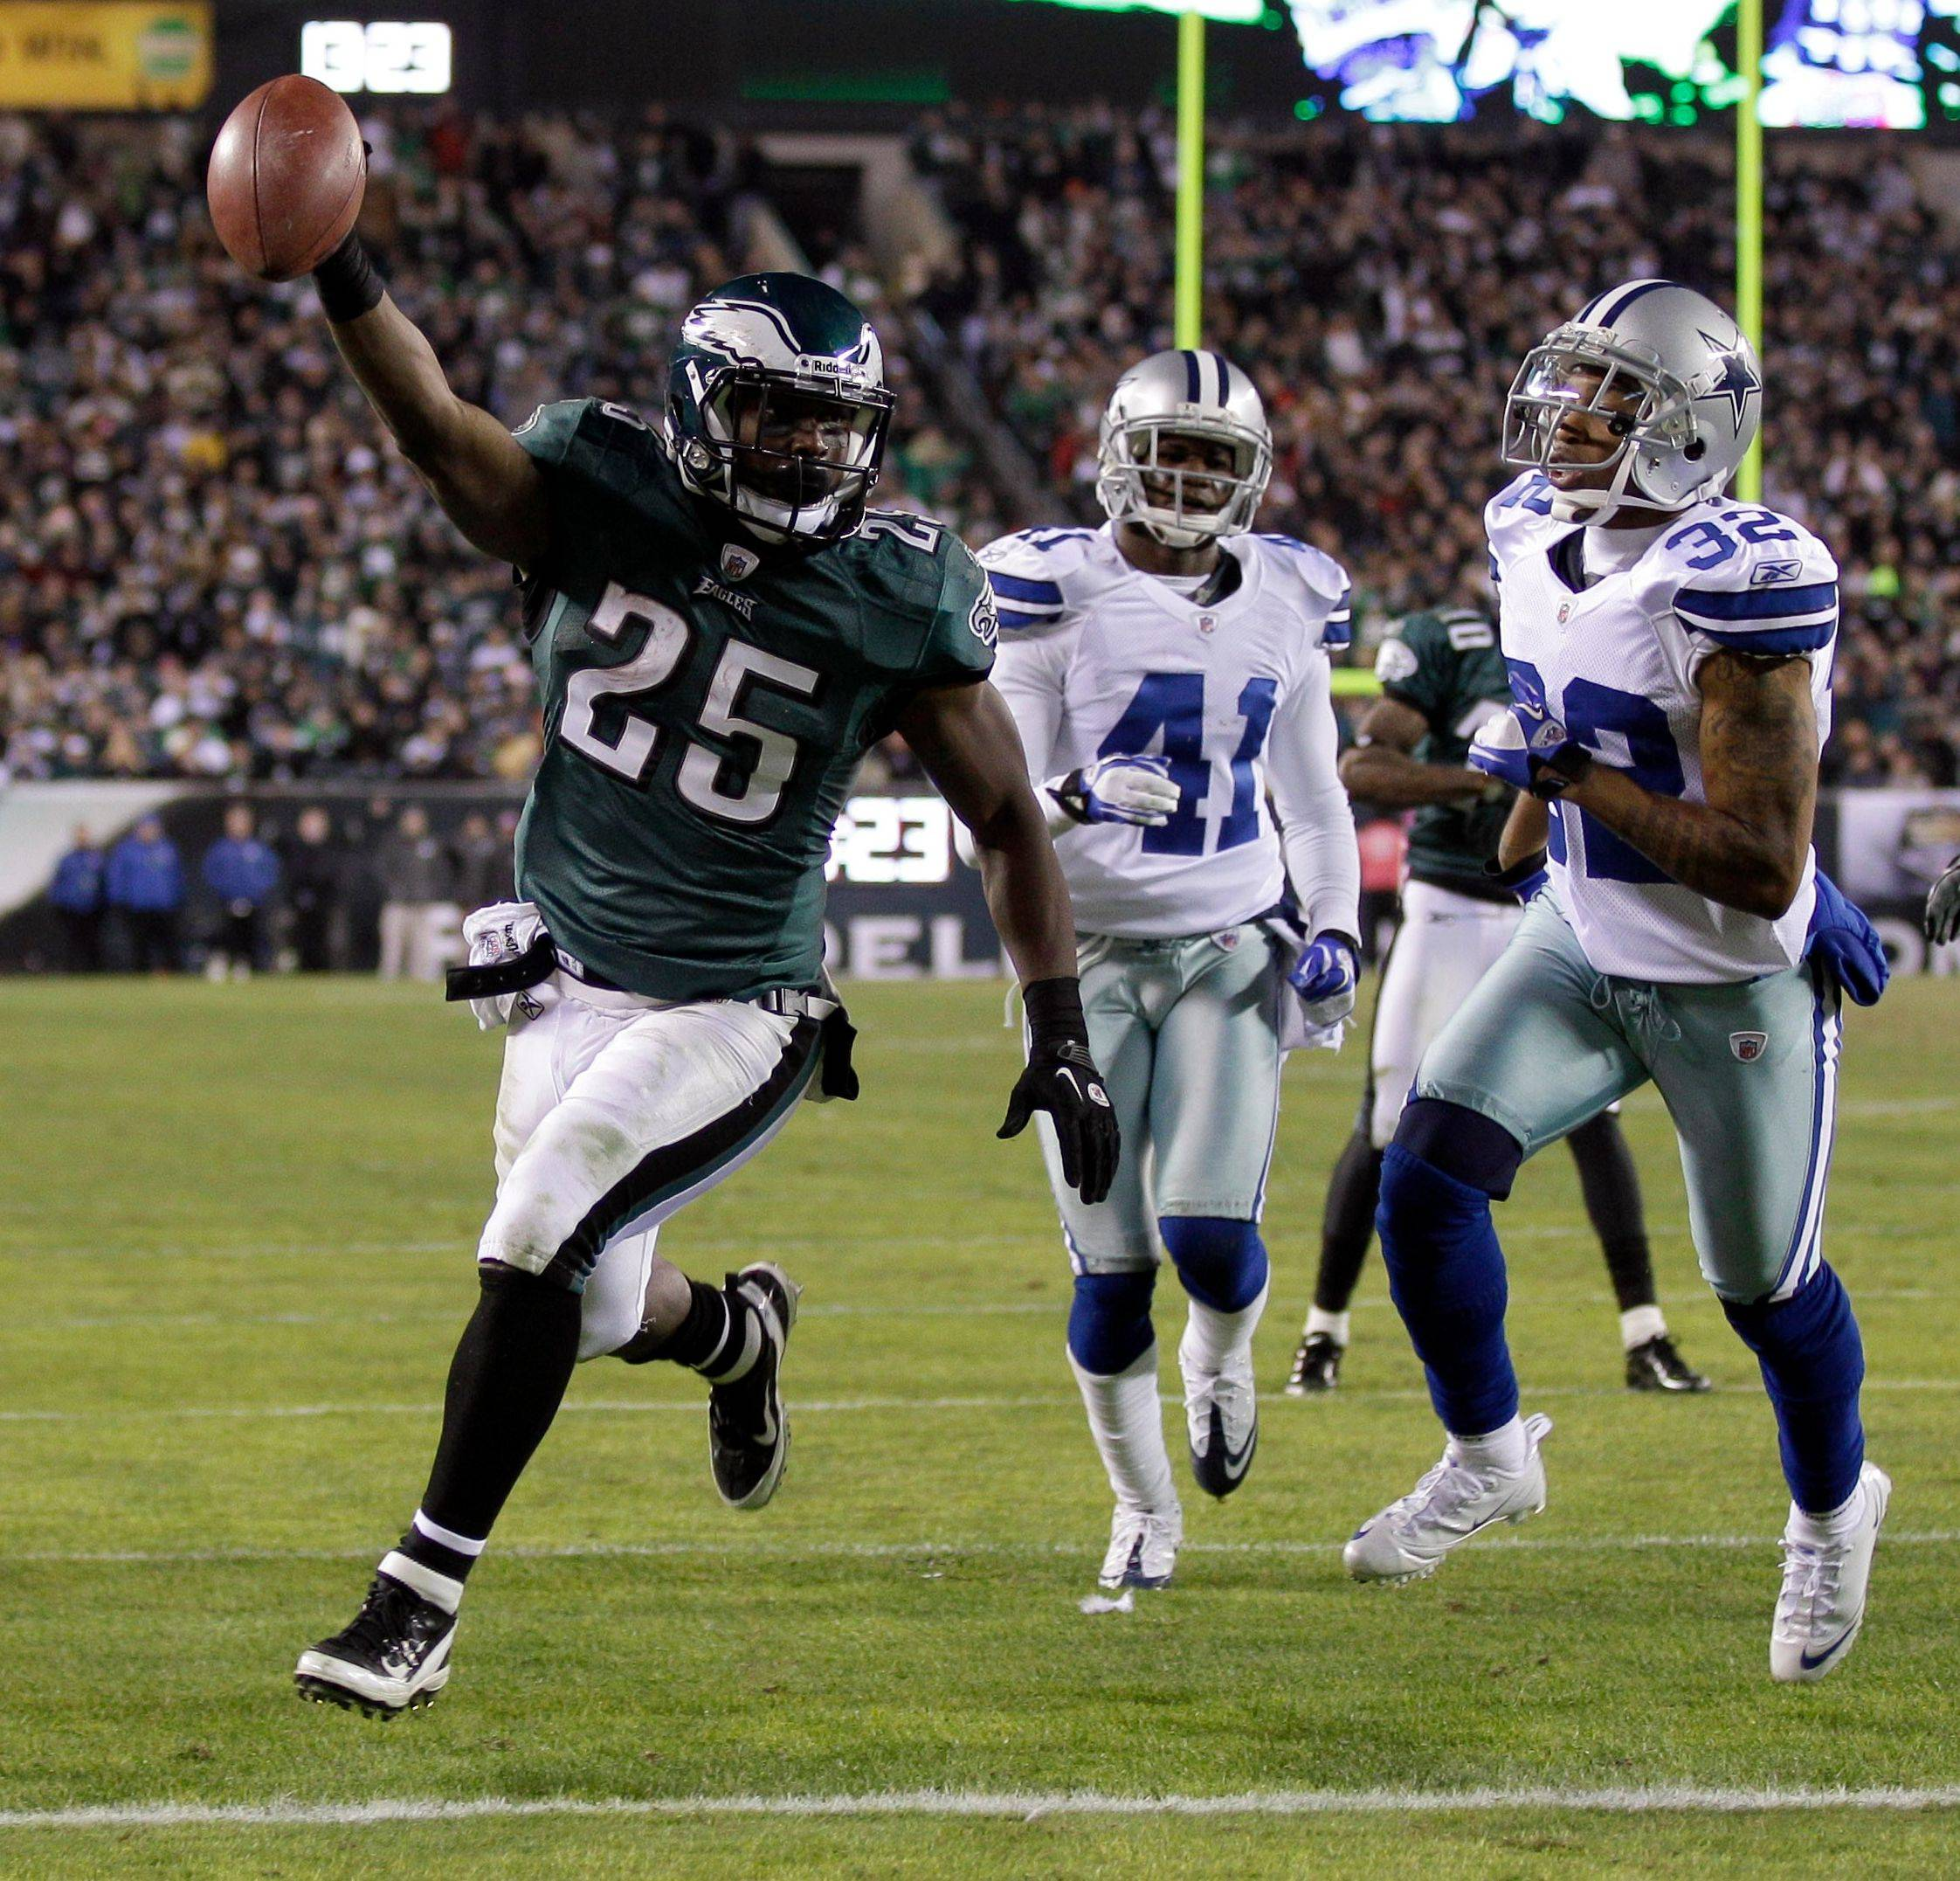 Eagles running back LeSean McCoy holds the ball up as he scores a touchdown against the Cowboys in 2011. McCoy had a rough season in 2012, but he did score 20 TDs two years ago.